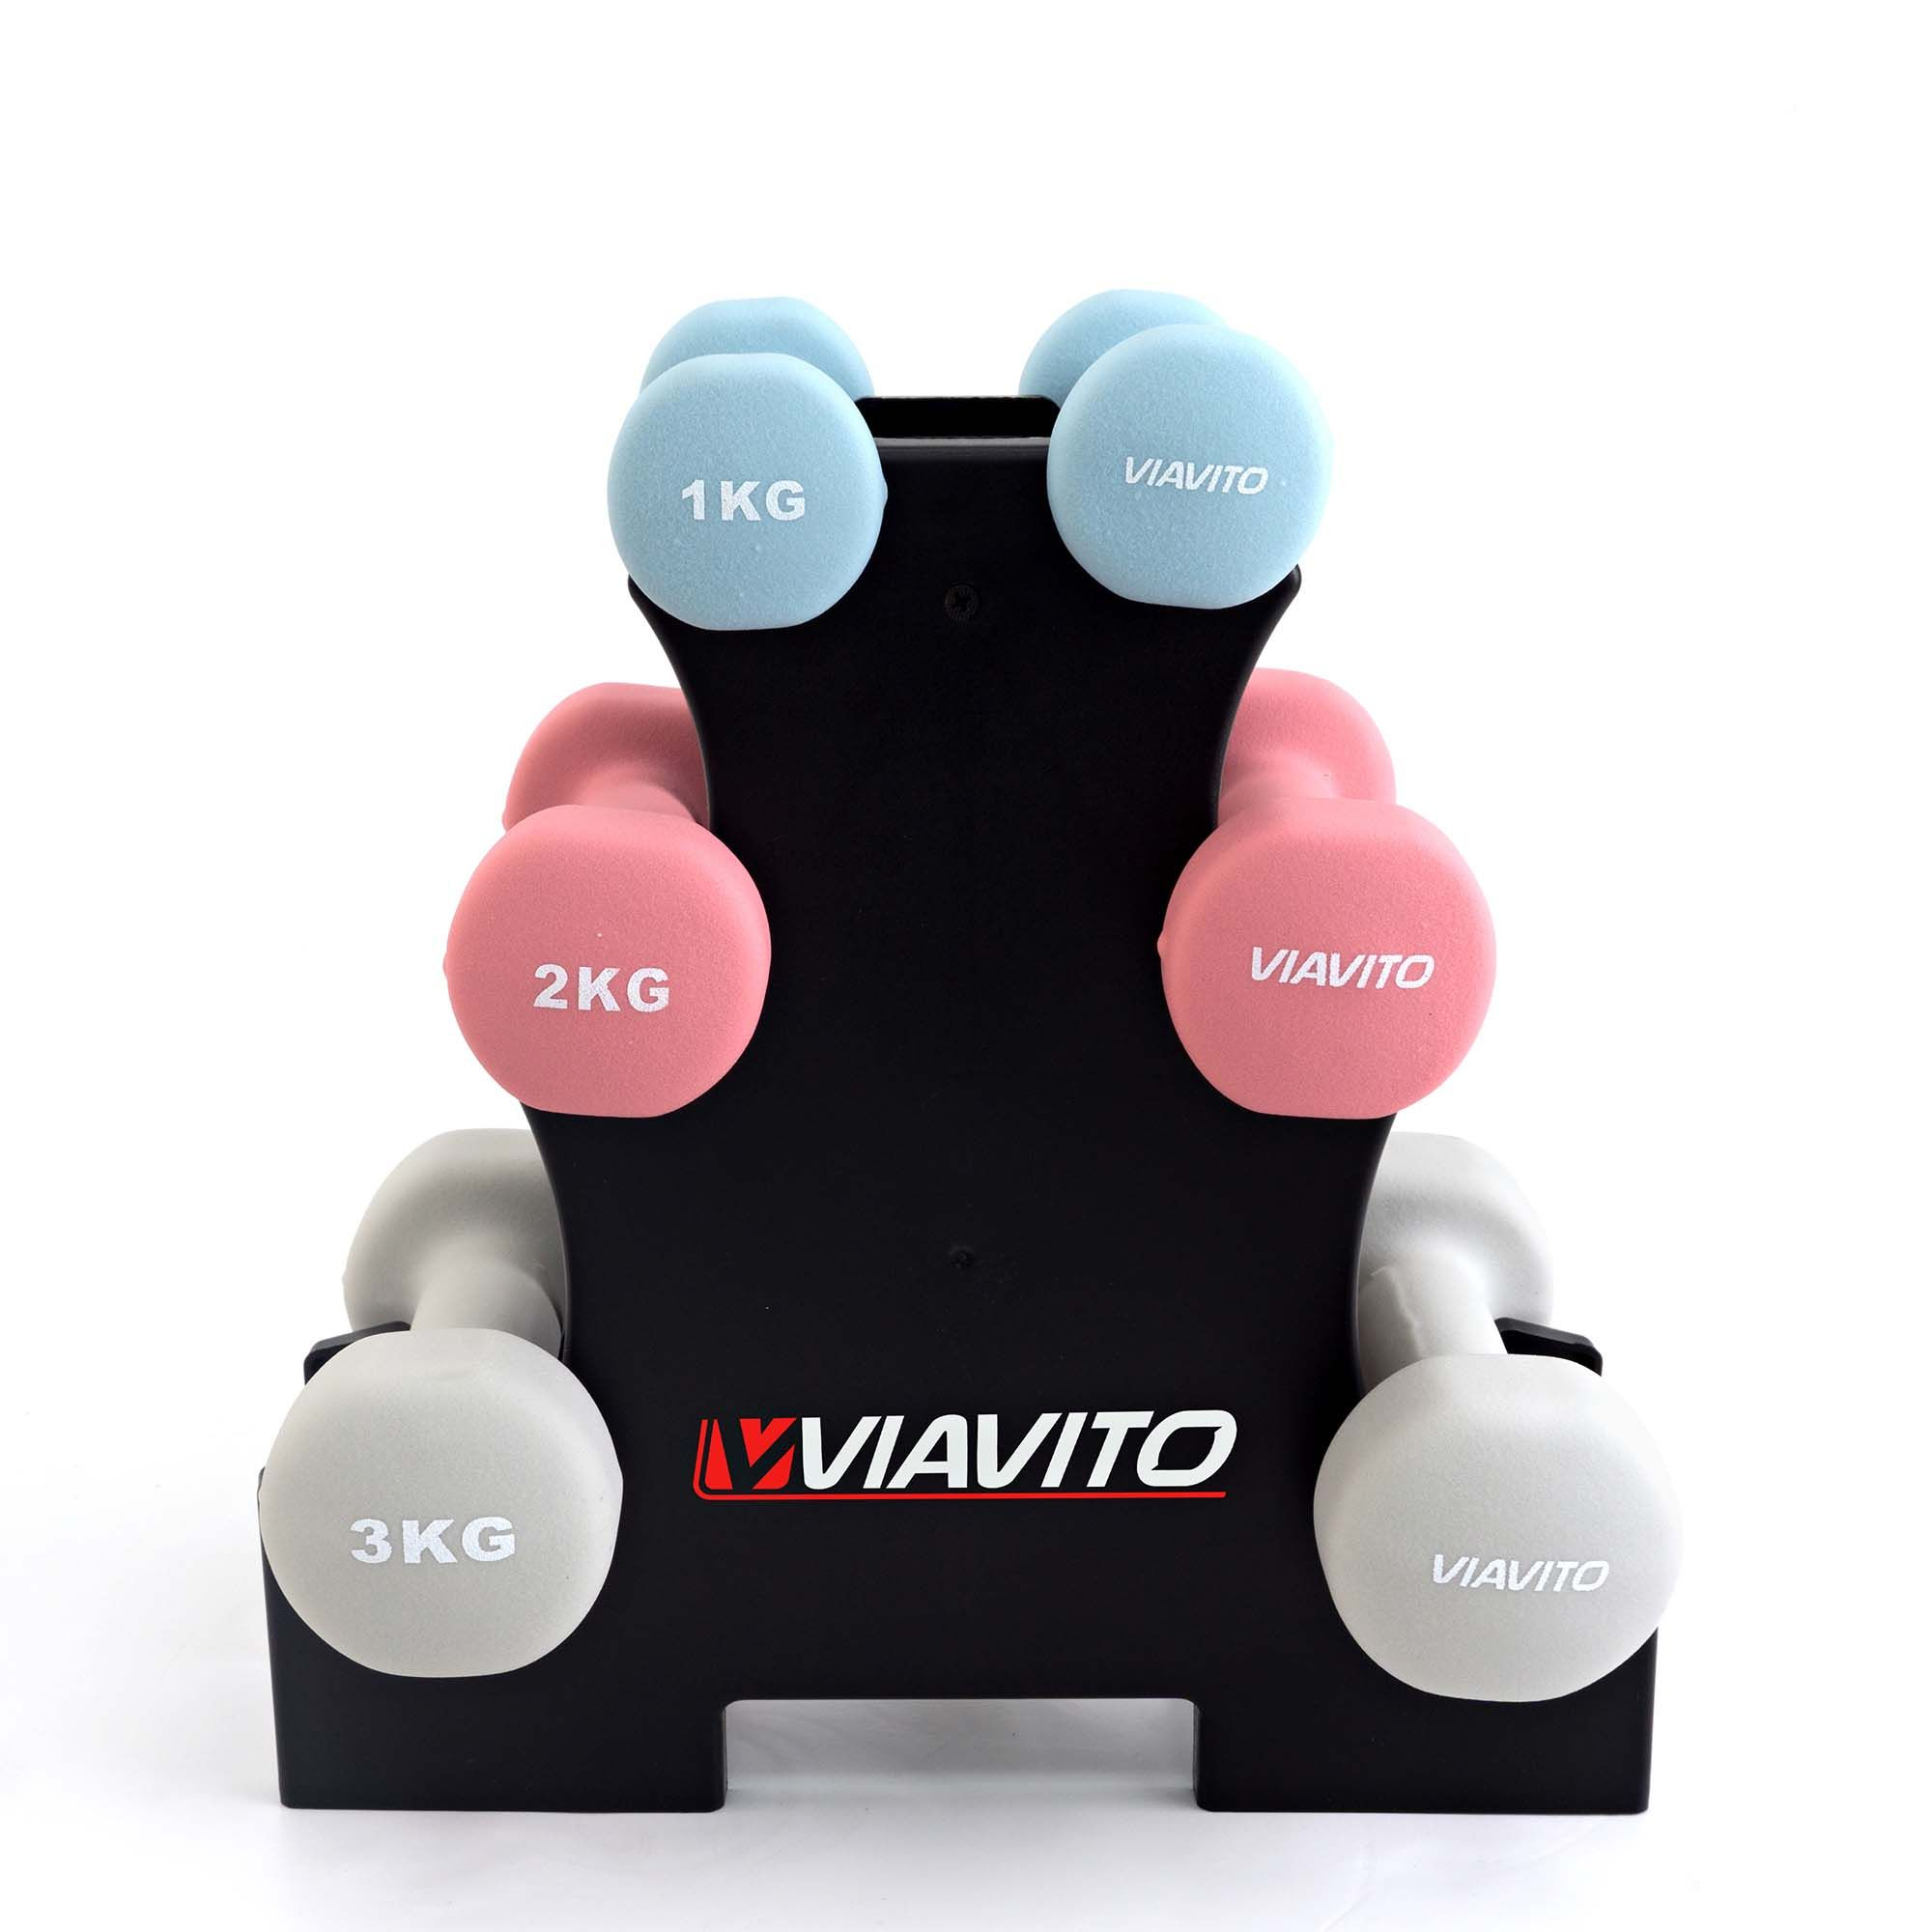 Back Pain Yoga Workout moreover bine Roll Ups Bridging Pilates Exo Chair X further Viavito Kg Dumbbell Weights Set With Stand Viavito Kg Dumbbell Weights Set With Stand Angle View X likewise Peak Weights Room F D A Ae B Ba C X additionally Maxresdefault. on yoga using weights